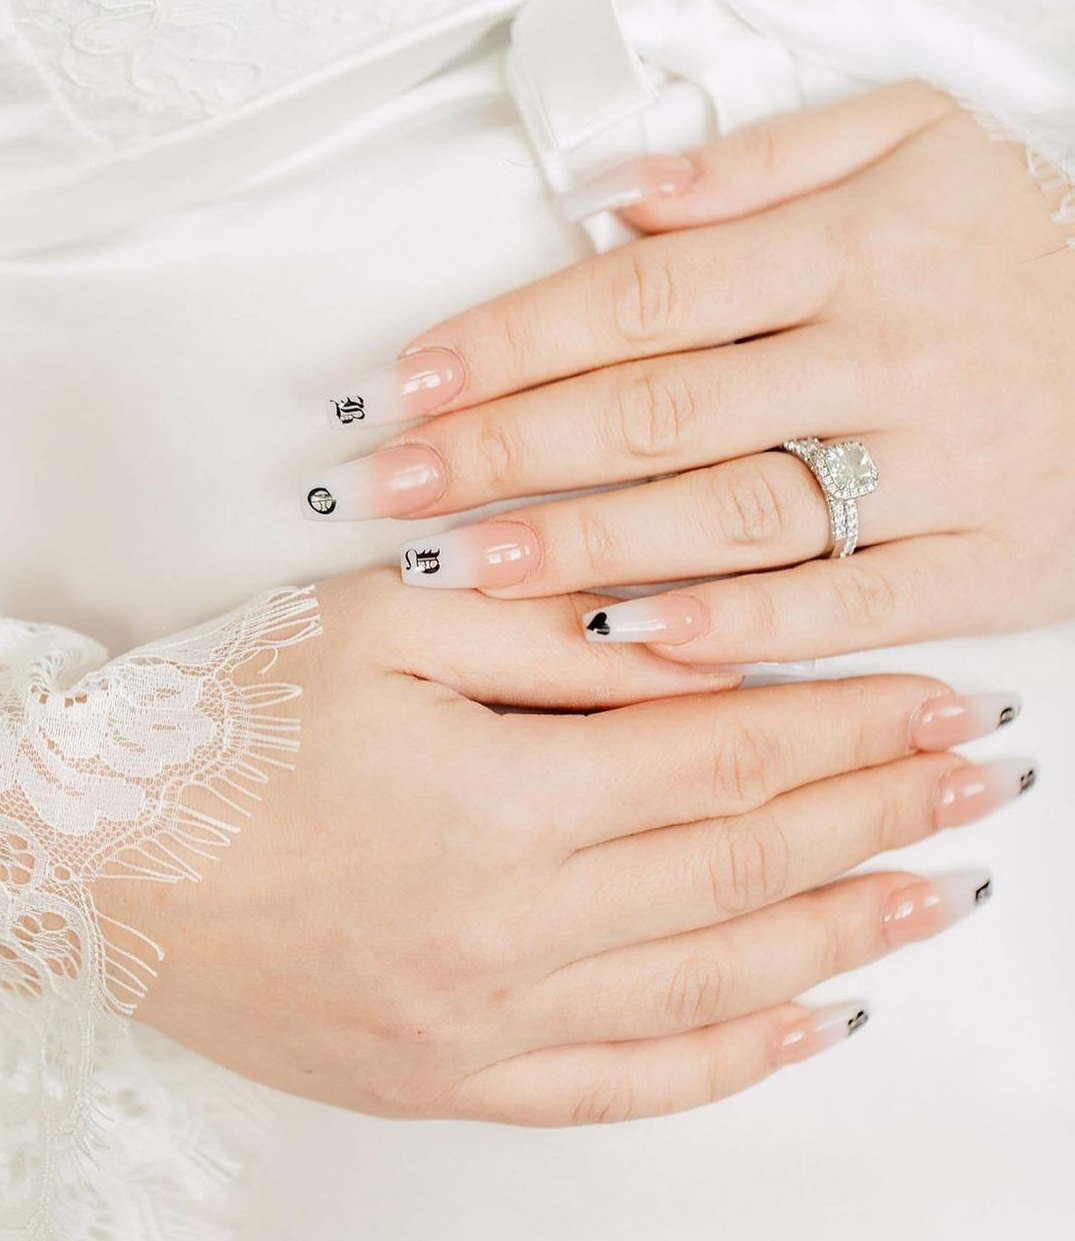 Best Nail Art Ideas To Flaunt Your Nails